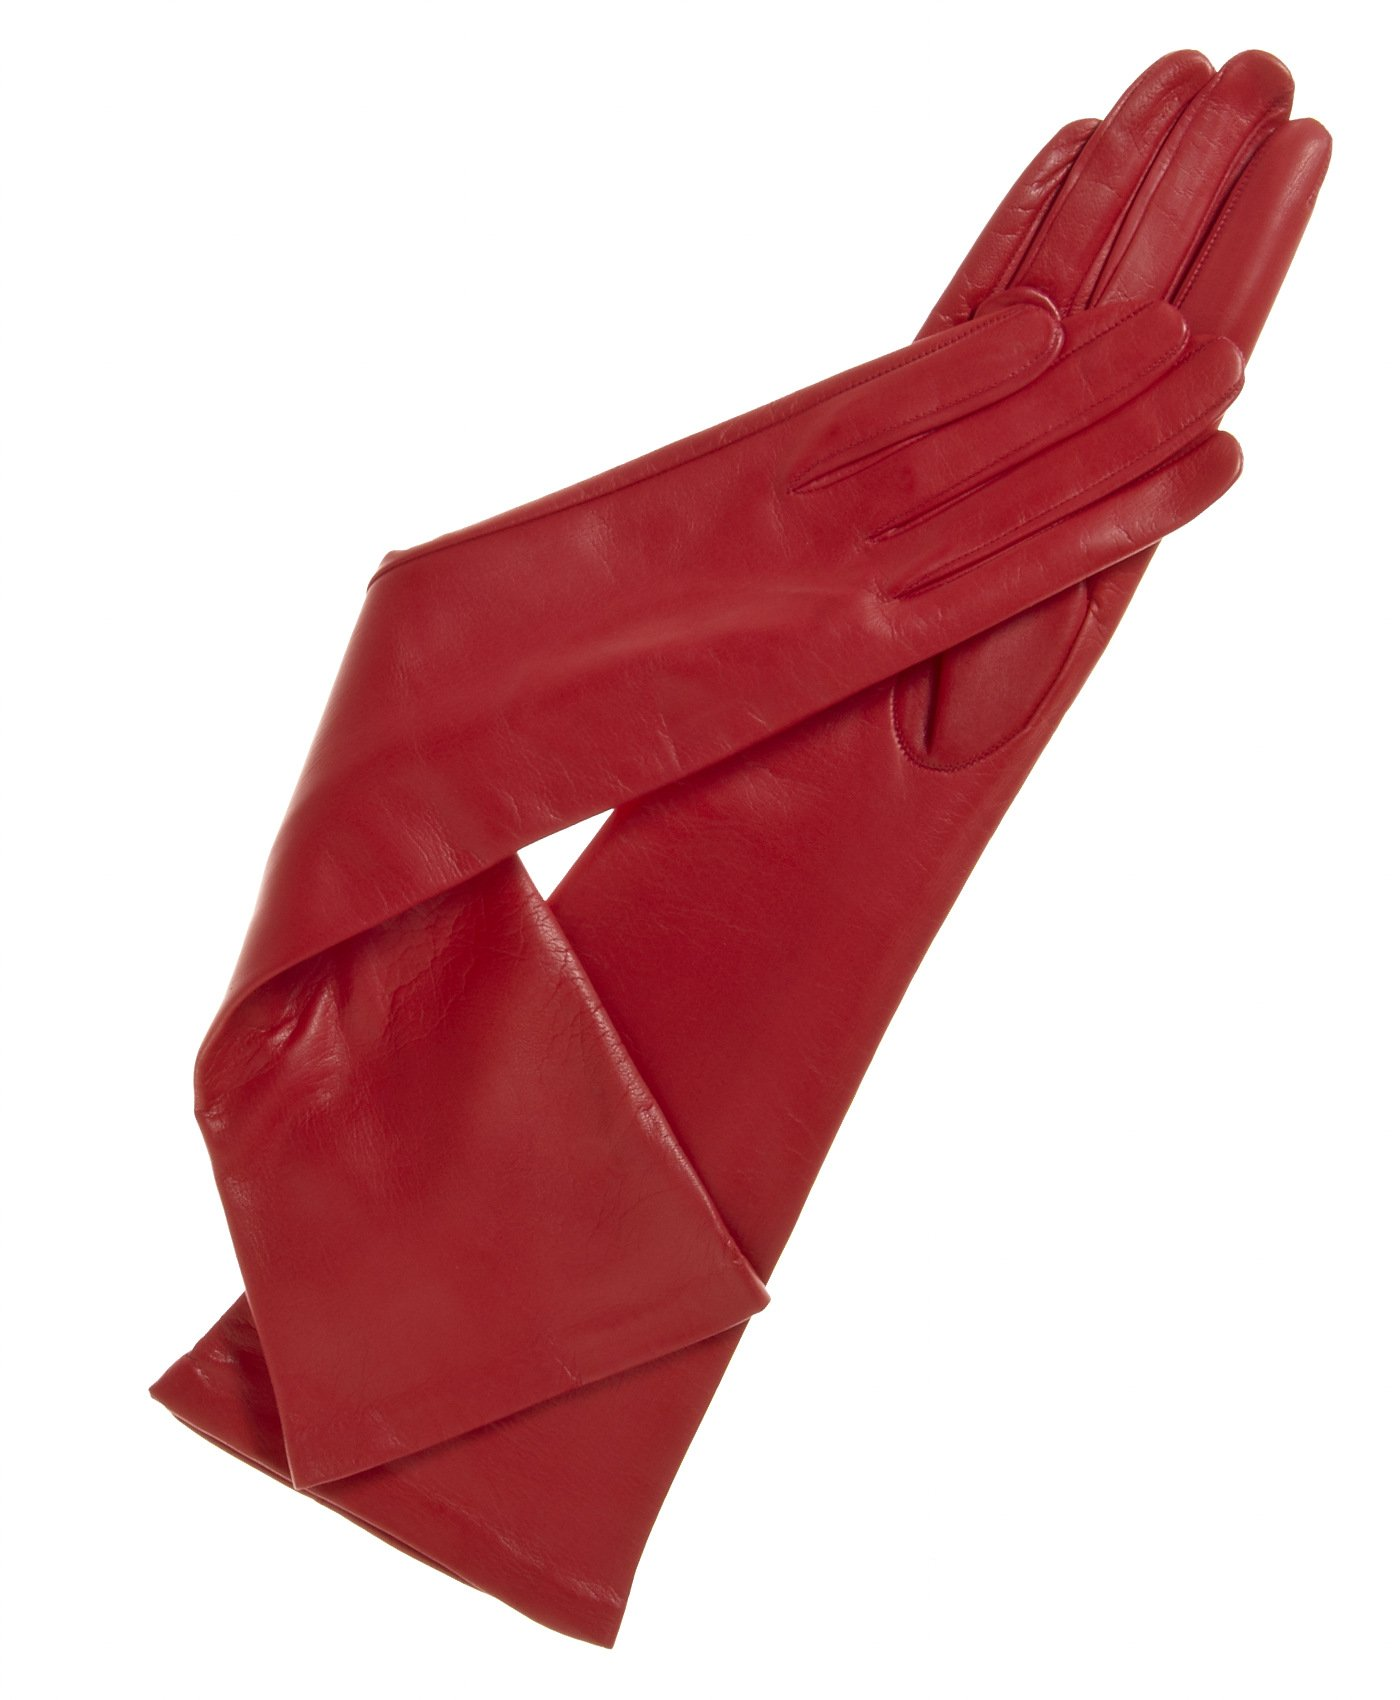 Fratelli Orsini Women's Italian ''8 Button Length'' Silk Lined Leather Gloves Size 7 1/2 Color Red